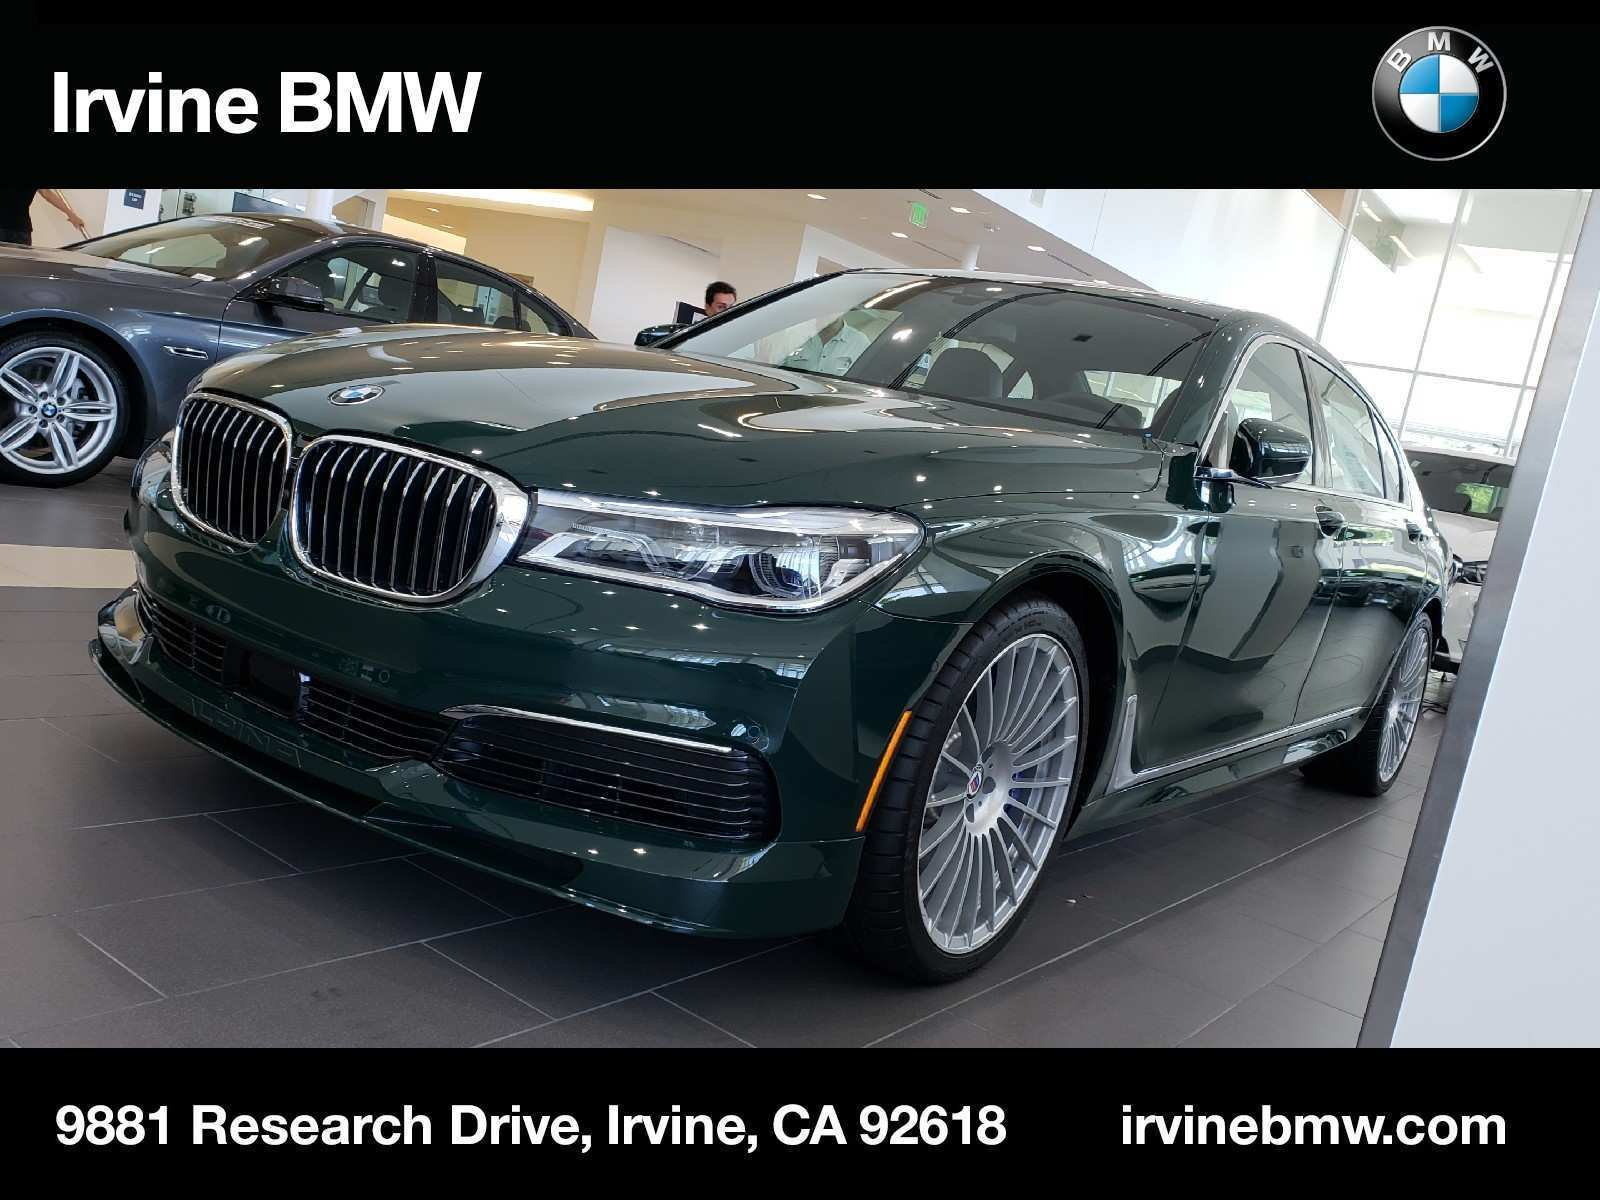 94 New 2019 Bmw Alpina B7 For Sale New Review with 2019 Bmw Alpina B7 For Sale